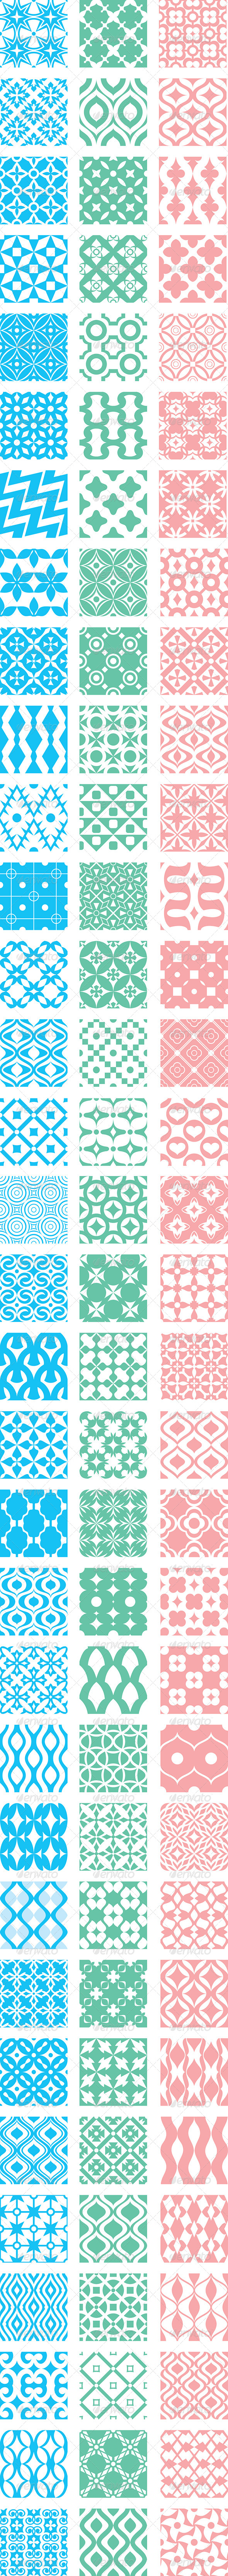 GraphicRiver Abstract Vector Patterns 5333270